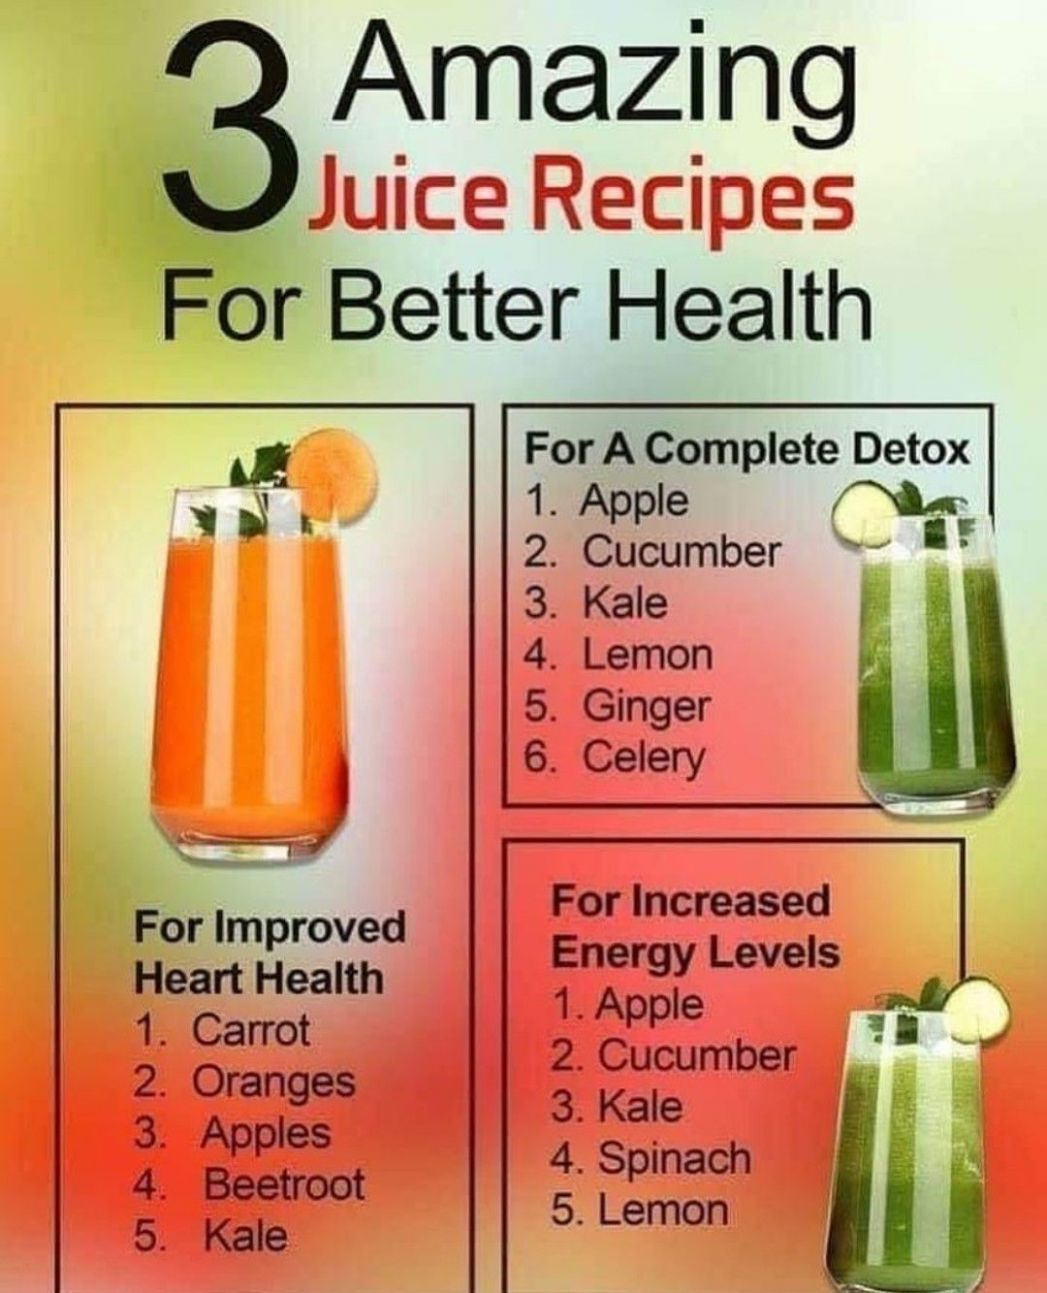 Pin on Detox juice - Juice Recipes For Weight Loss Fasting